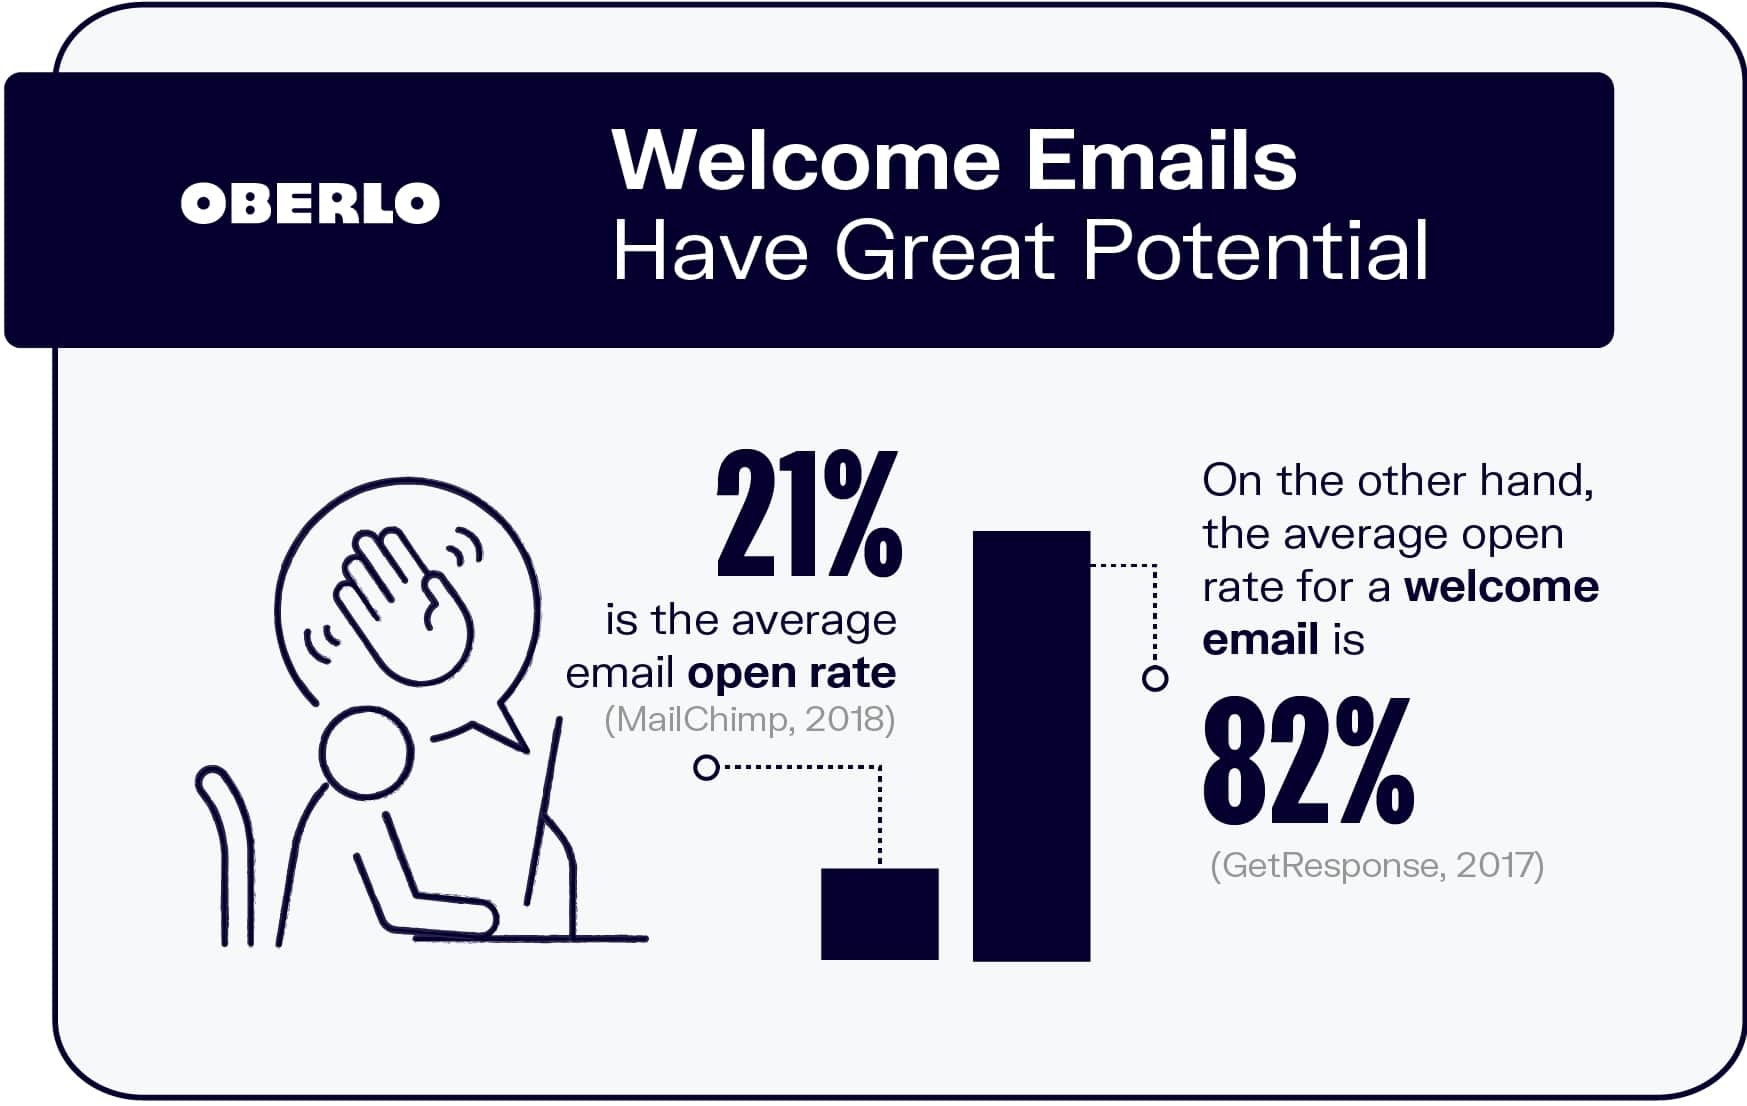 Welcome Emails Have a High Open Rate